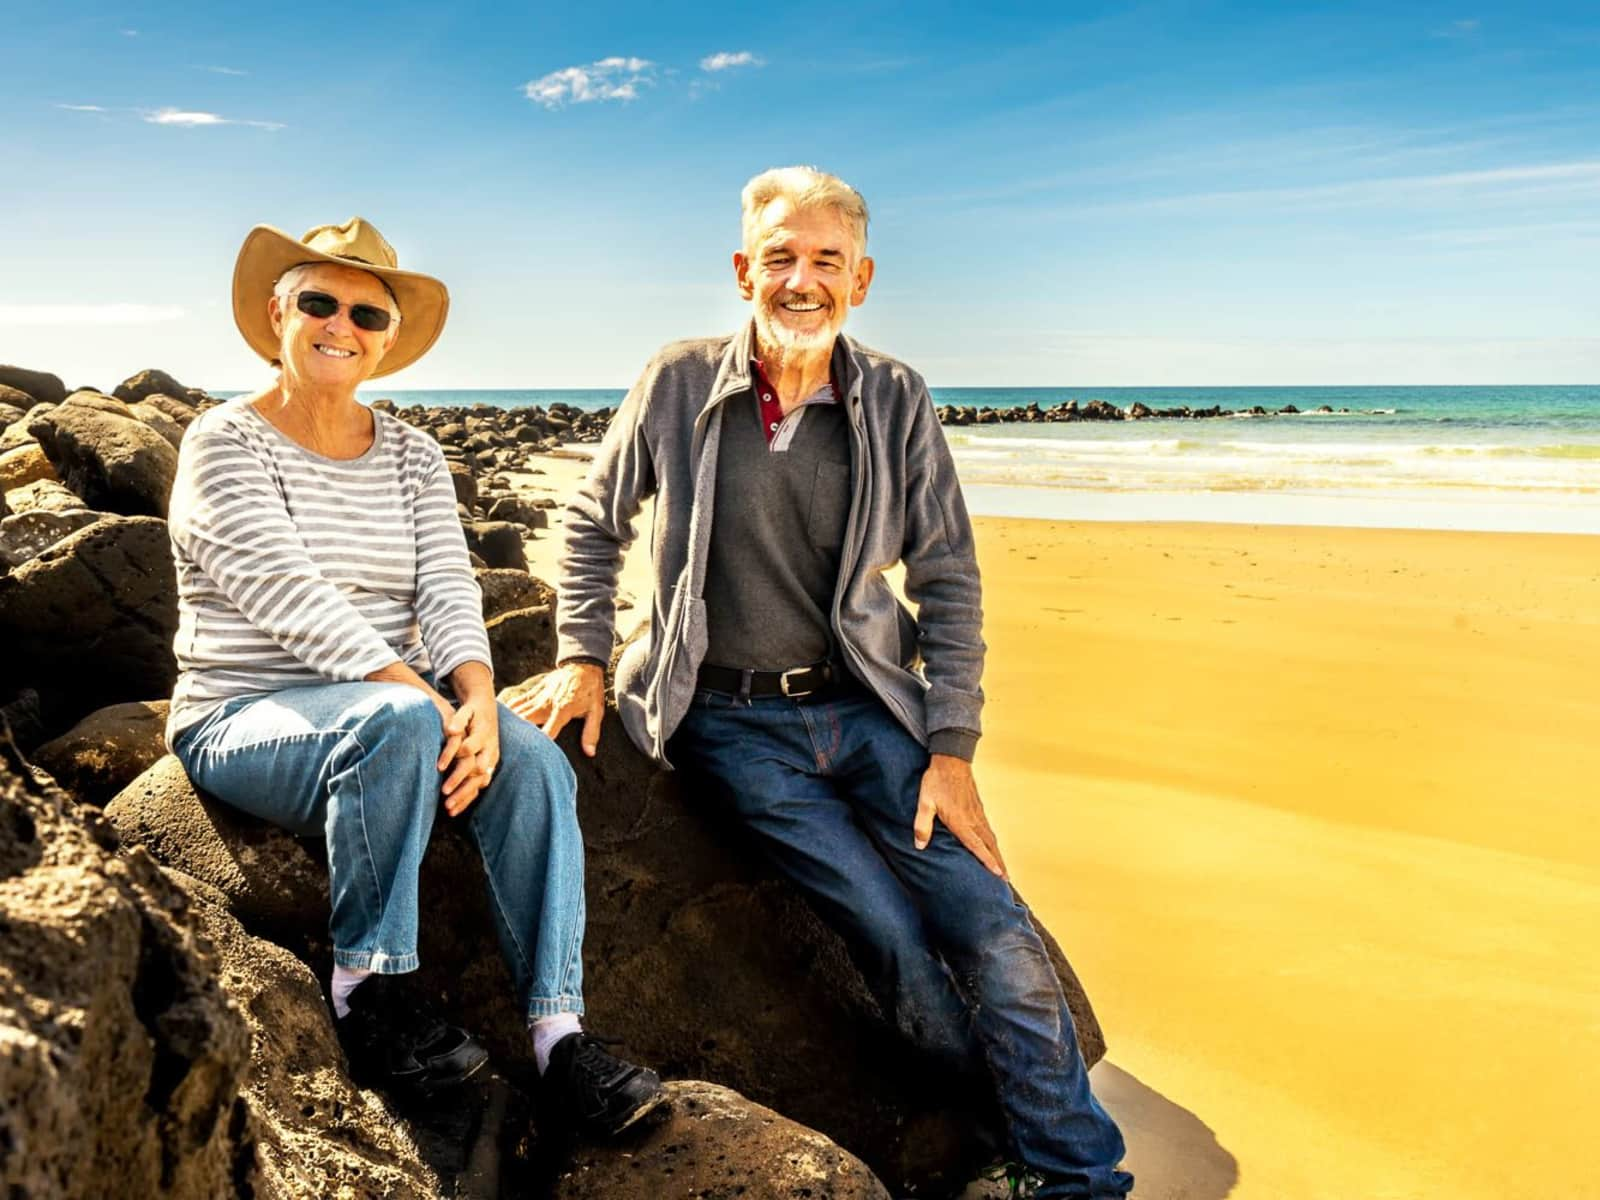 Brian & Judy from Broome, Western Australia, Australia